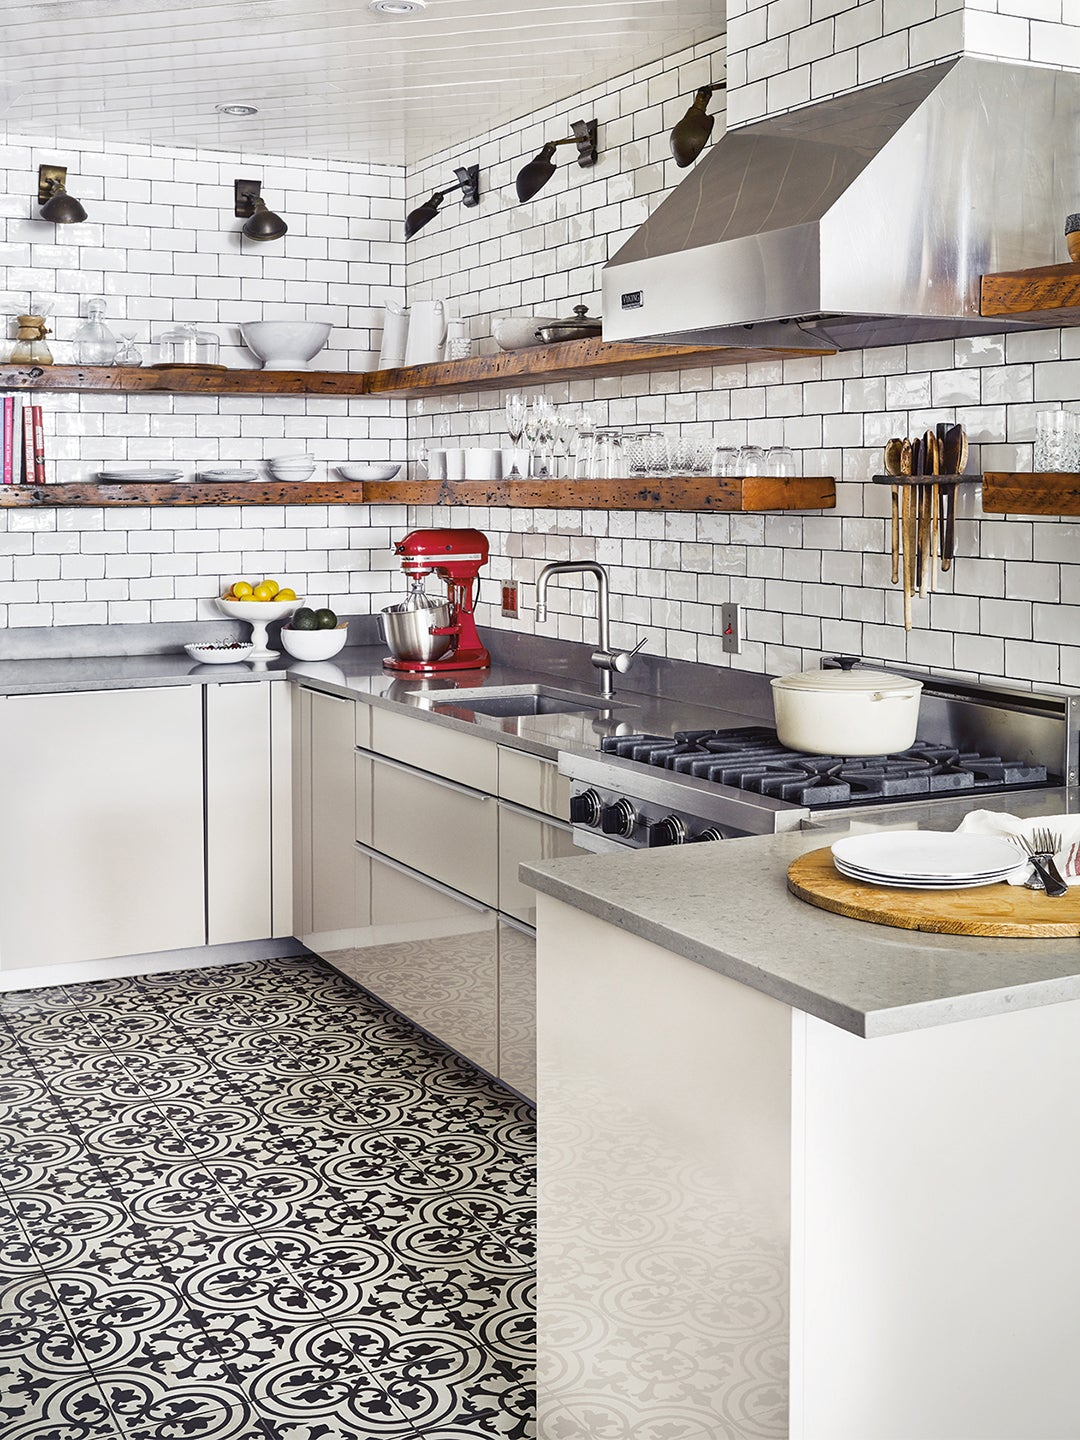 white kitchen with black and white tiles, open shelving